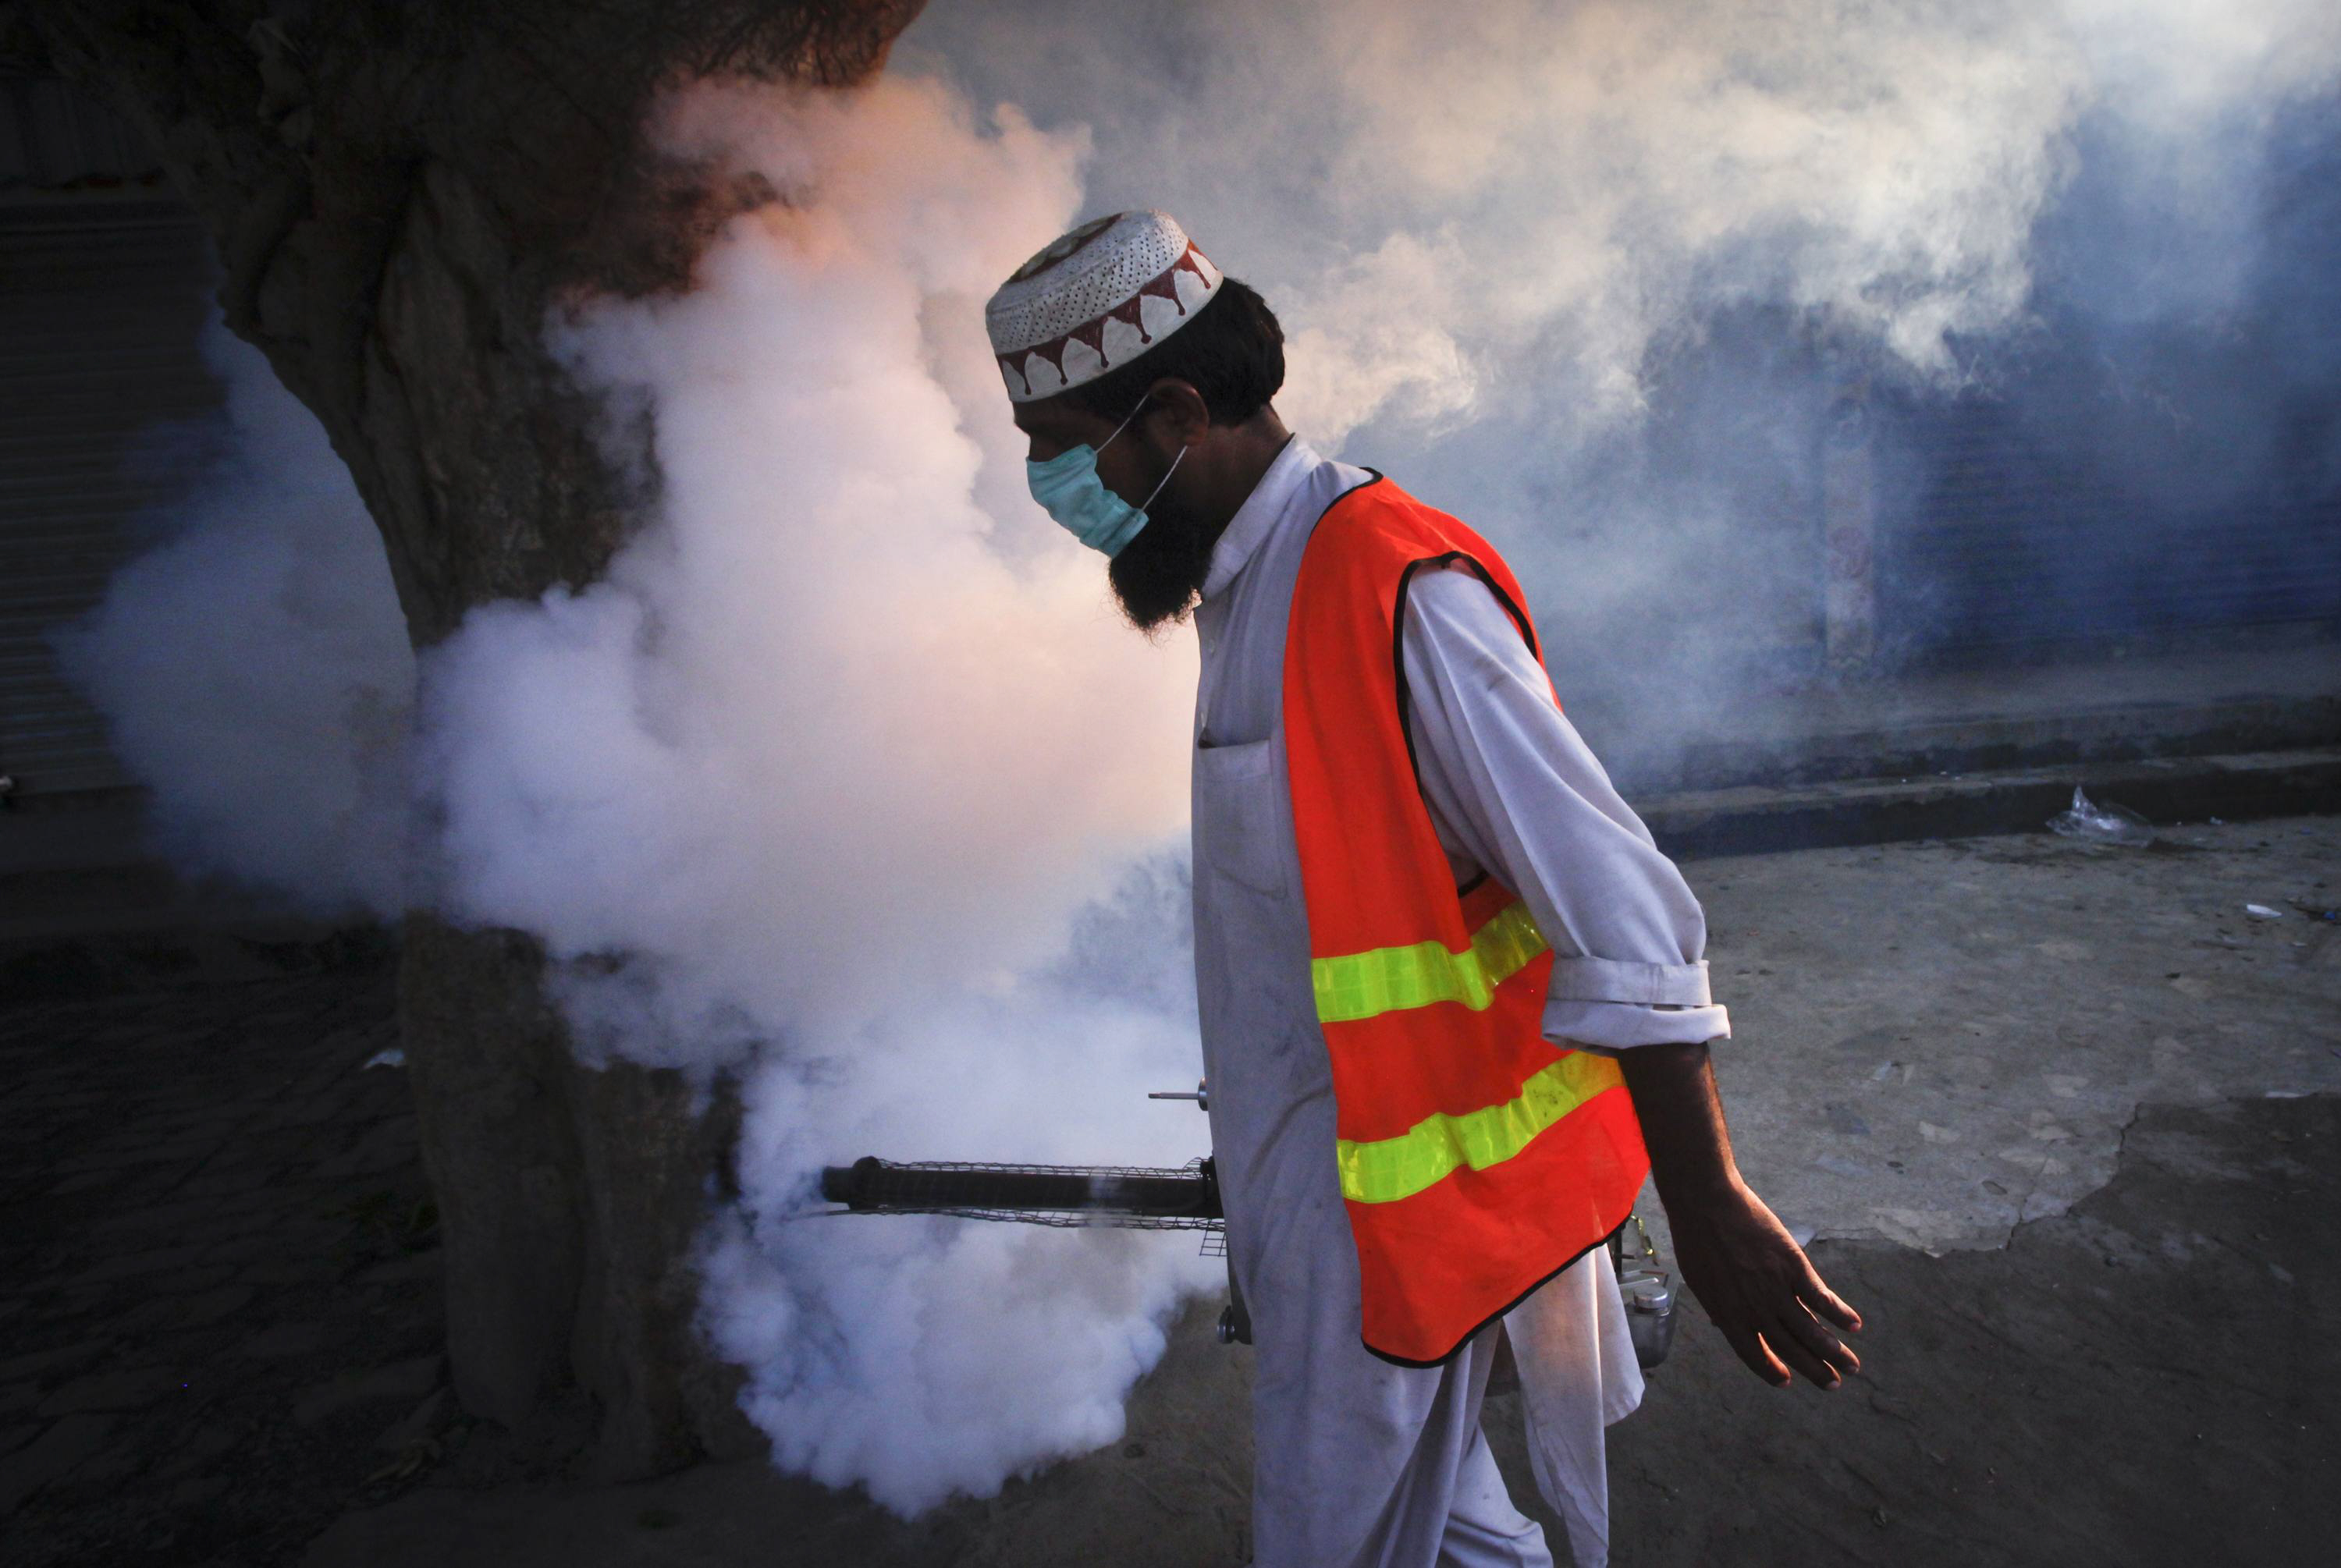 on tuesday karachi commissioner shoaib ahmed siddiqui directed the kmc officials to immediately initiate the fumigation drive across the city as part of the drive low lying areas where water is most likely to accumulate as well as drain nalas will be targeted to eliminate the spread of mosquitos which are responsible for causing malaria and other infectious diseases photo reuters file